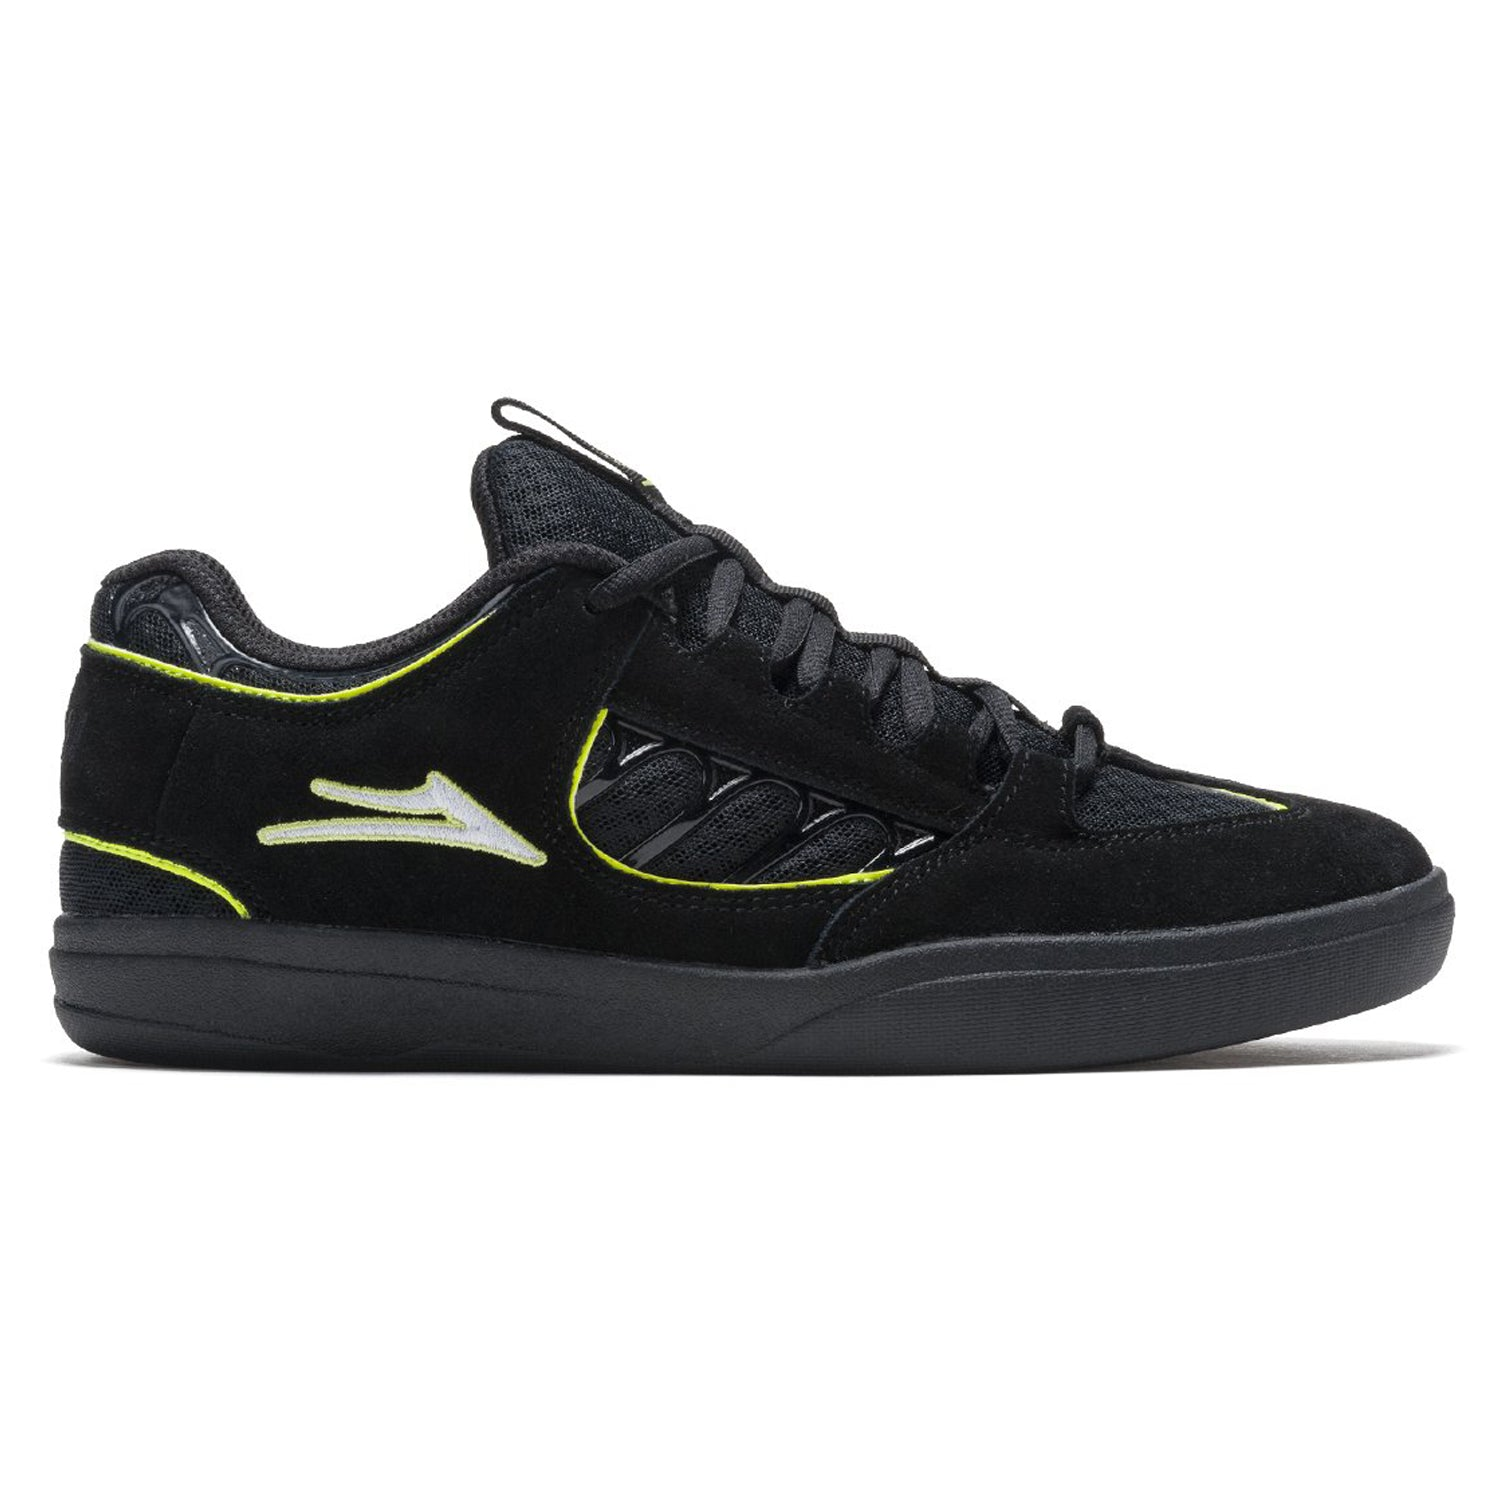 Lakai Carroll Black/Neon Green